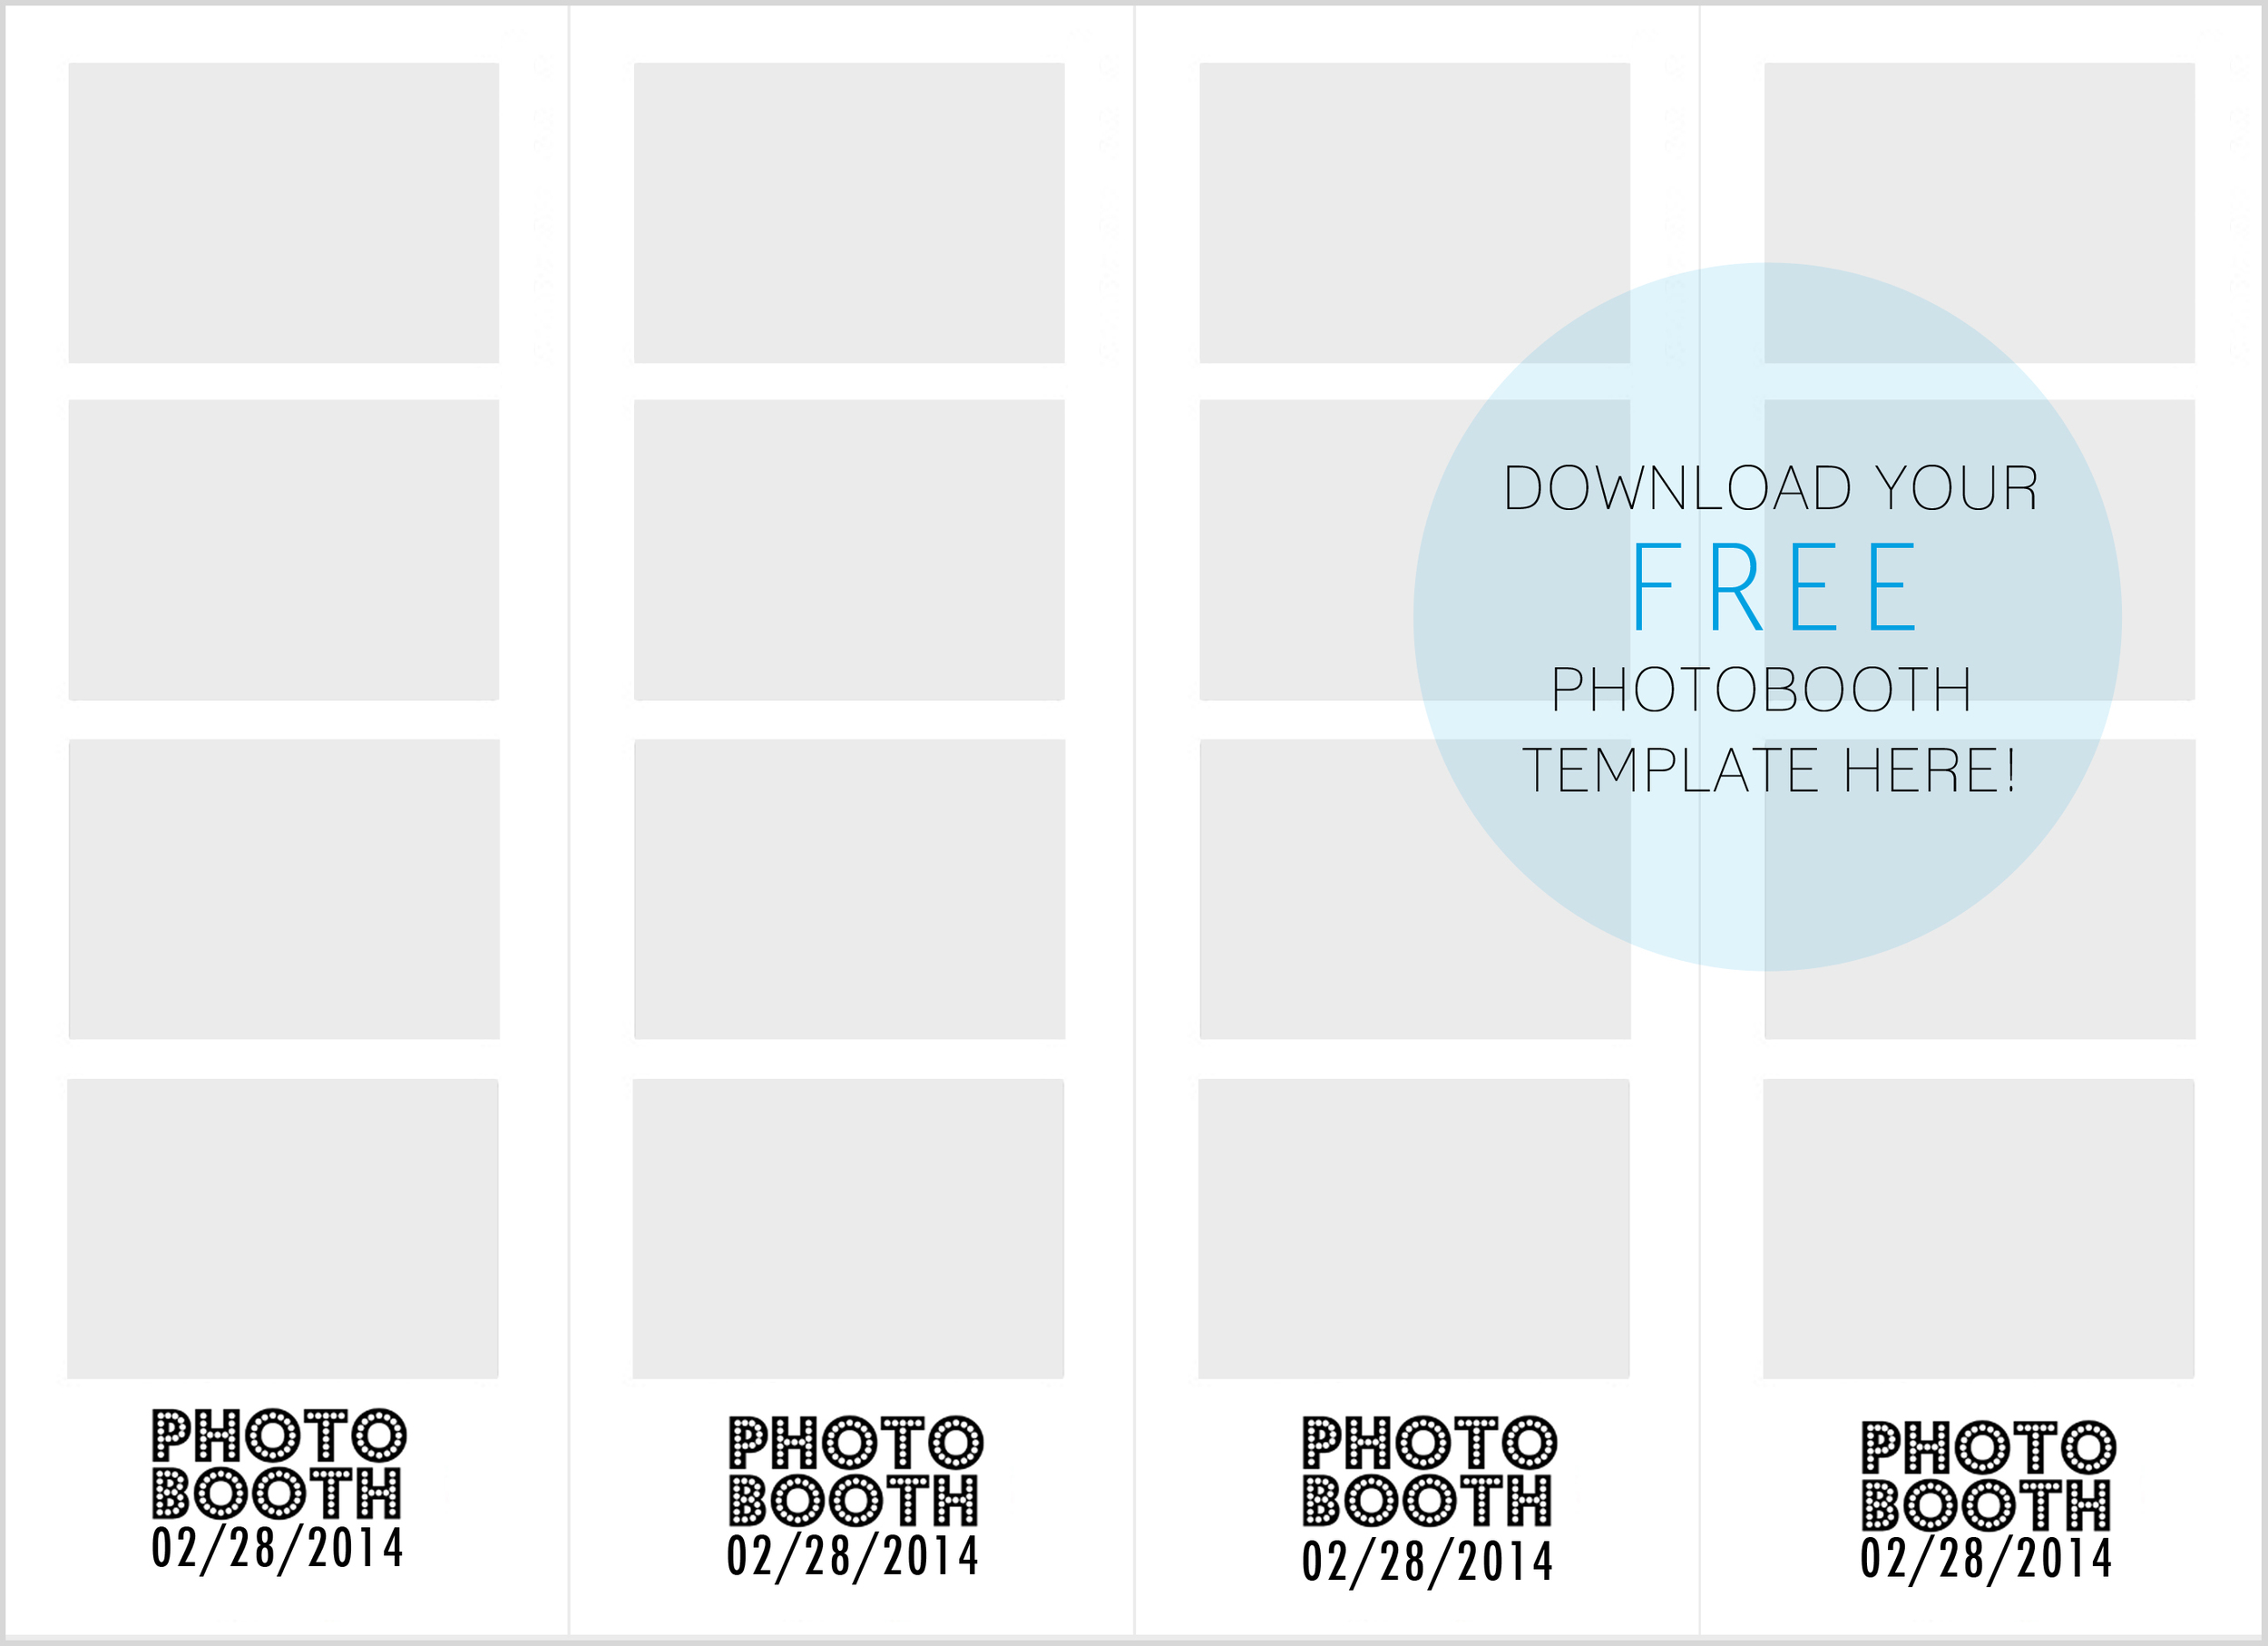 5 PHOTO BOOTH FRAME TEMPLATES FREE DOWNLOAD, BOOTH PHOTO TEMPLATES ...